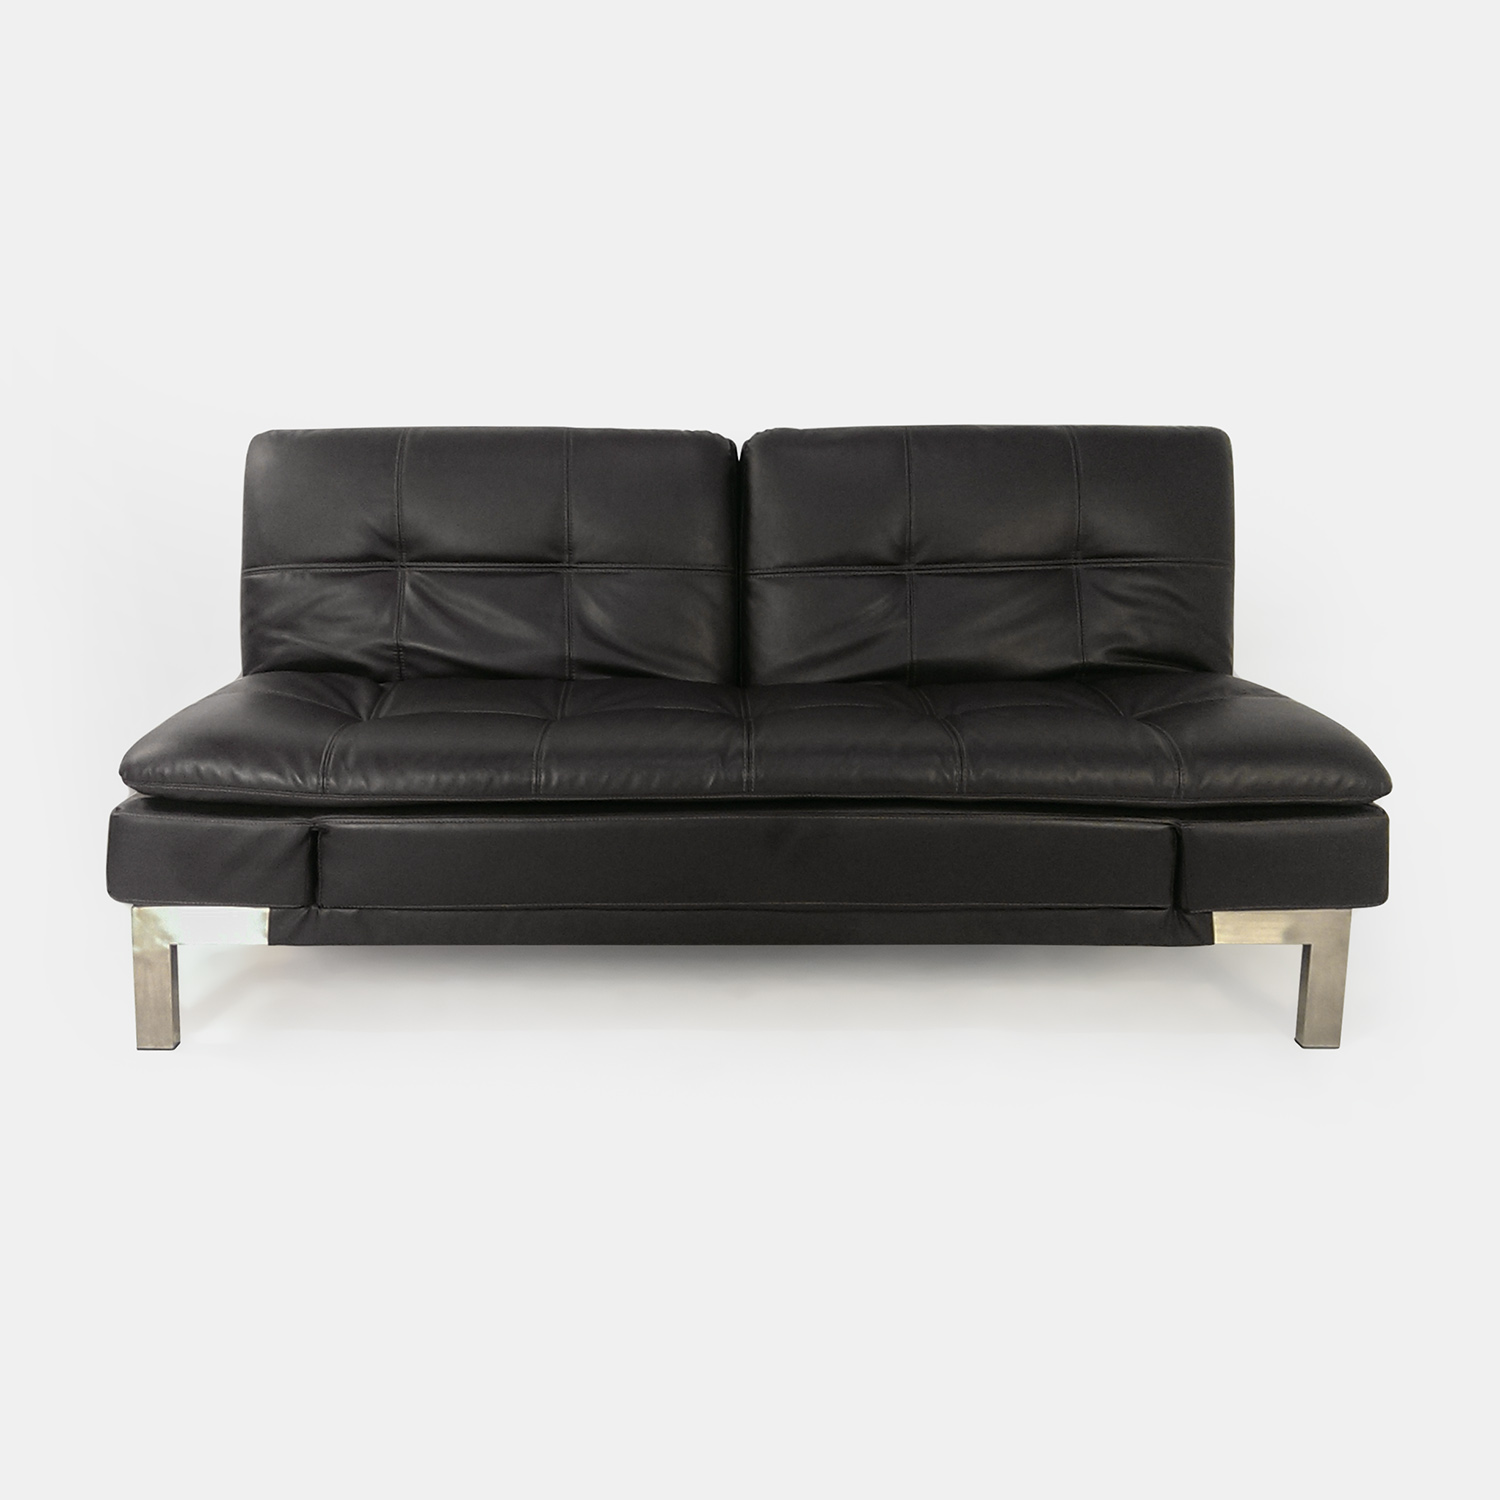 Leather Sofa Price: Leather Sofa Price Fabulous Black Leather Sofa Set Sets